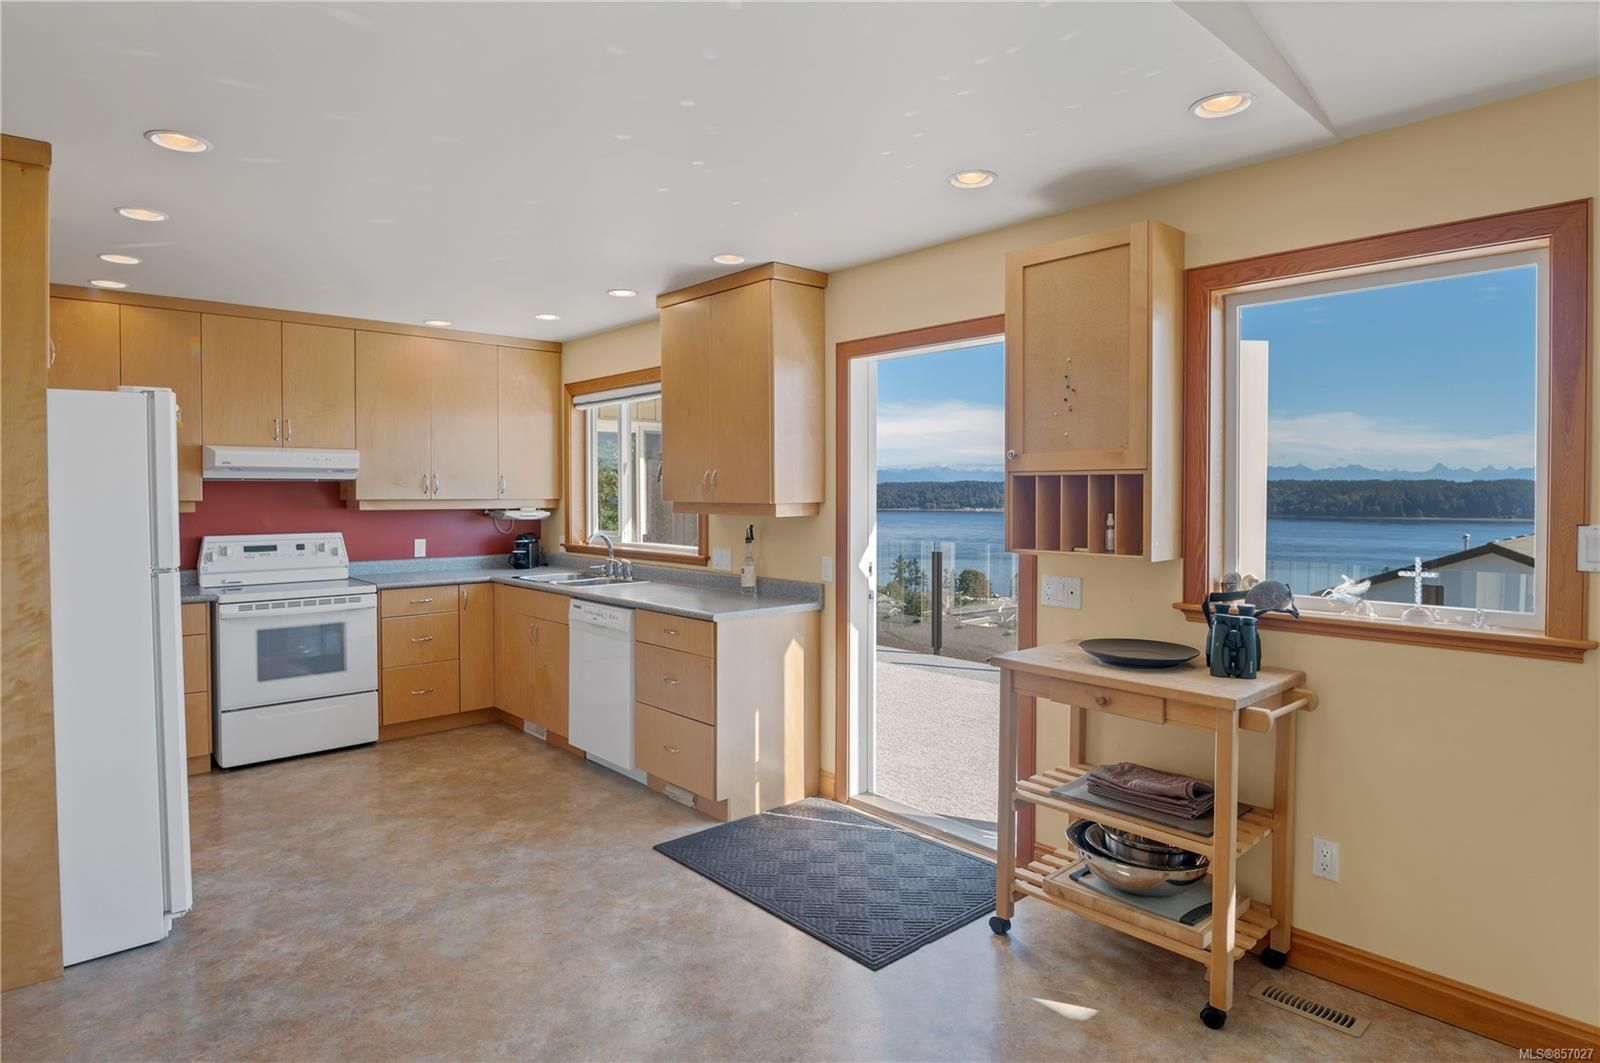 Photo 6: Photos: 253 S Alder St in : CR Campbell River South House for sale (Campbell River)  : MLS®# 857027